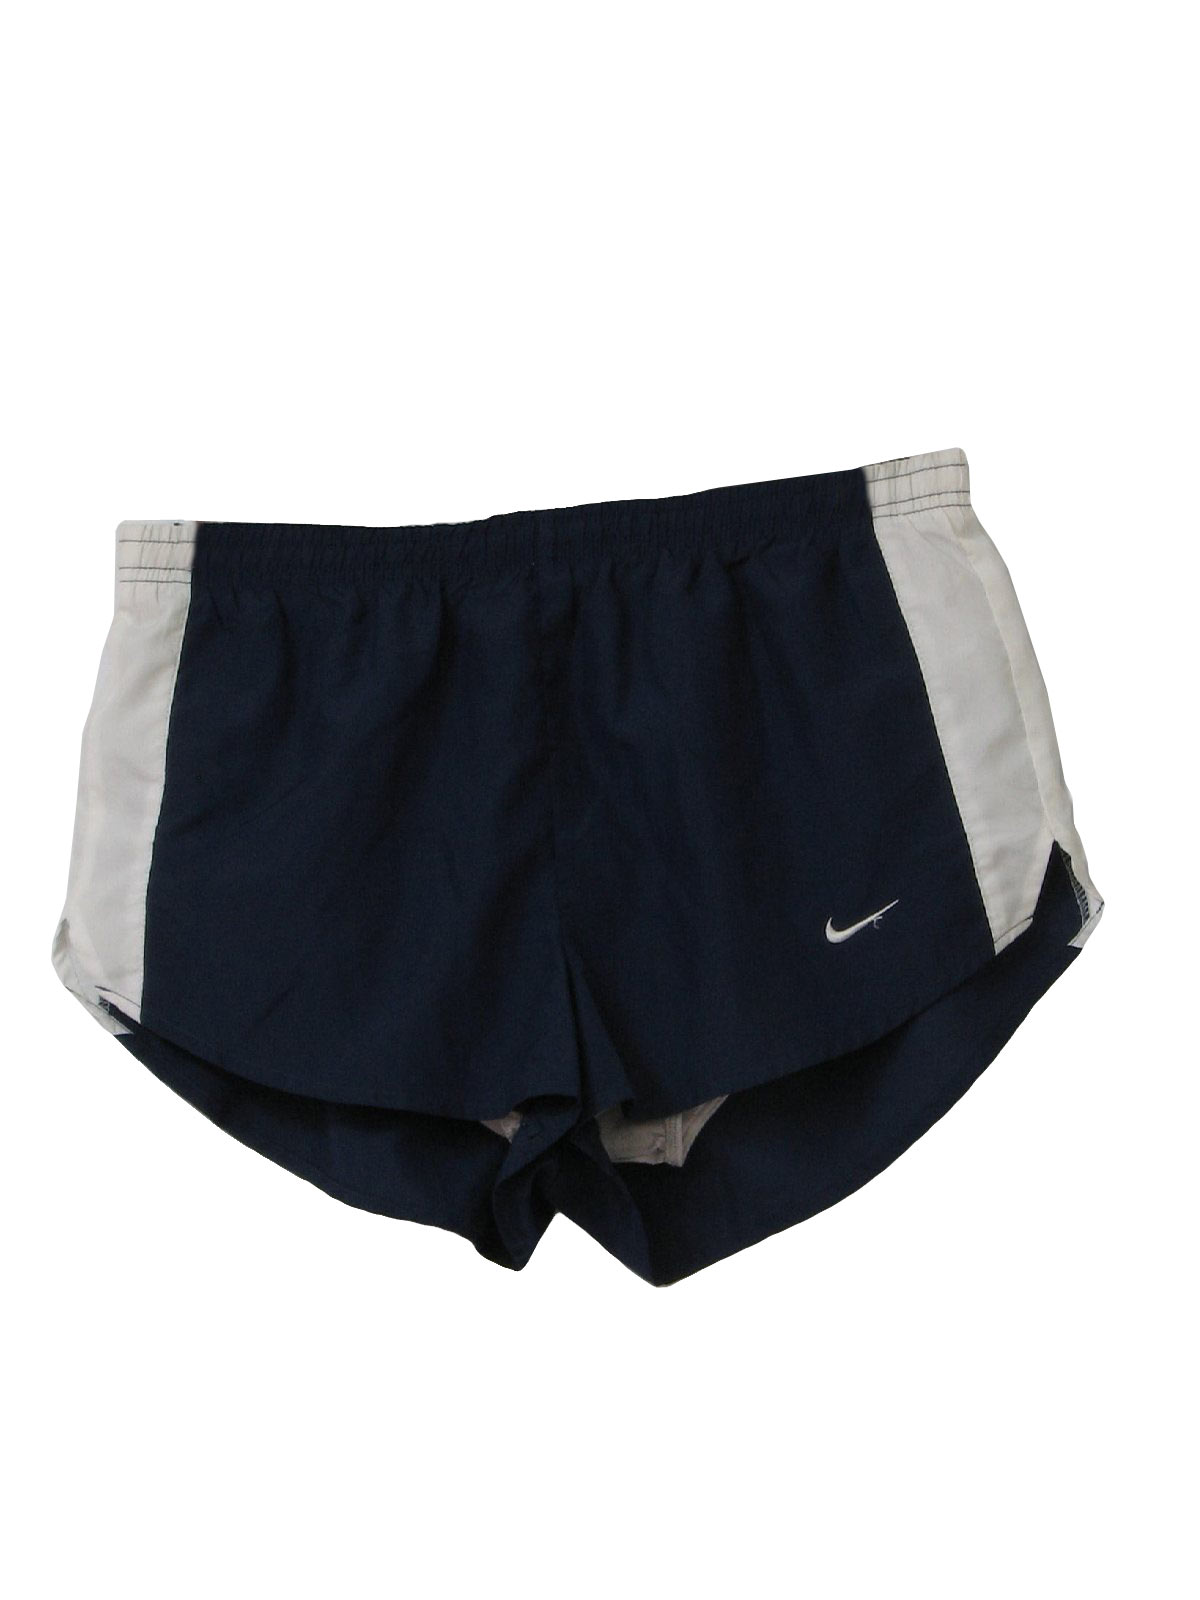 90 S Nike Shorts 90s Nike Mens Dark Blue And White Side